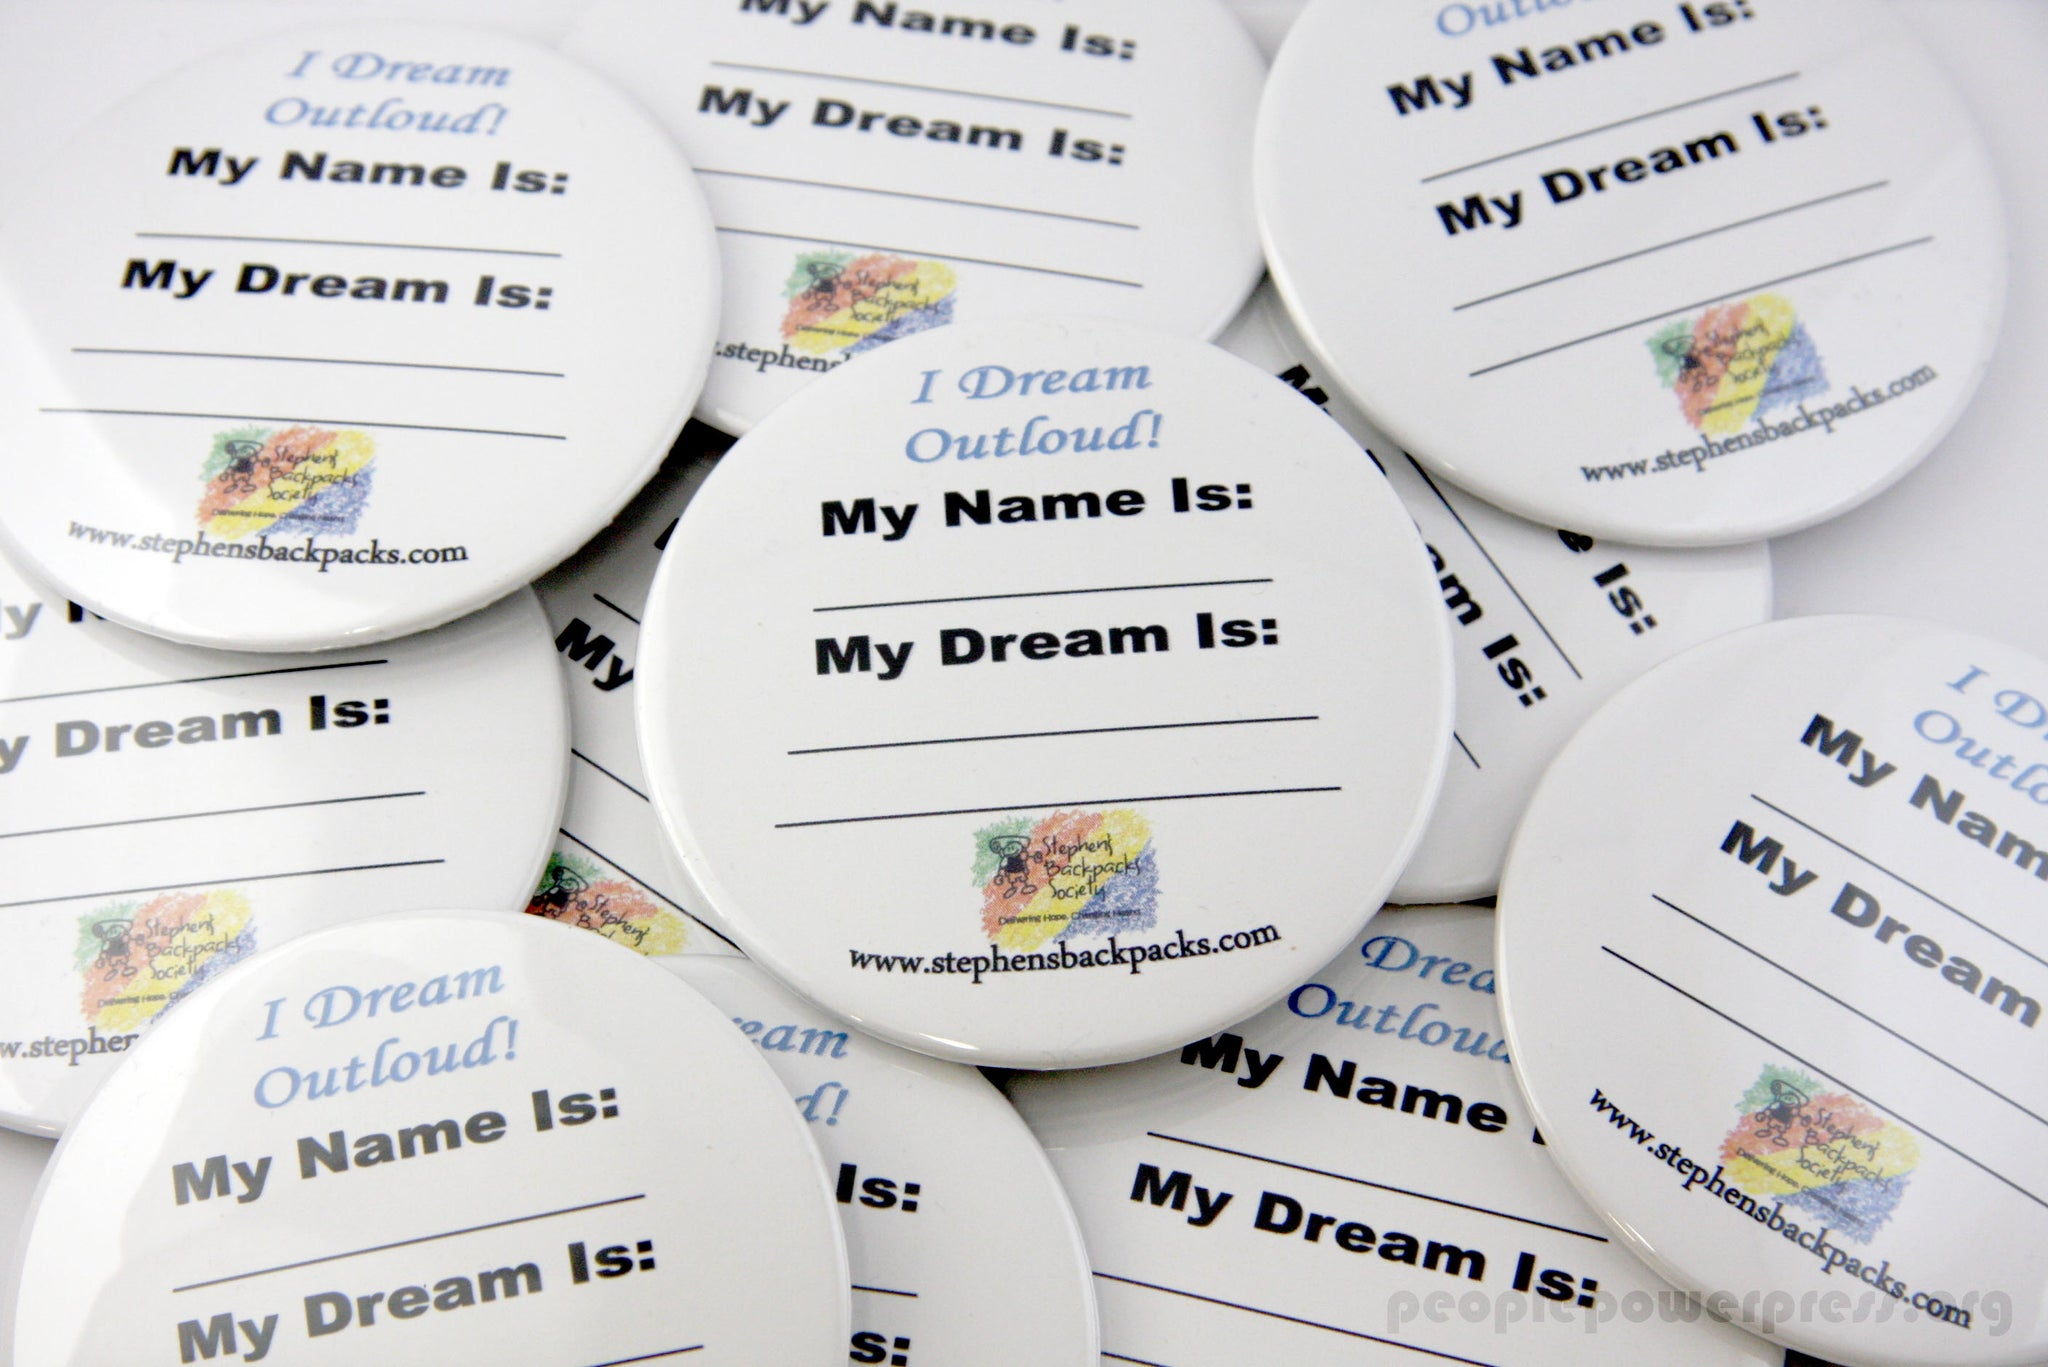 Dream Buttons, Custom Buttons by People Power Press, People Power Award 2016